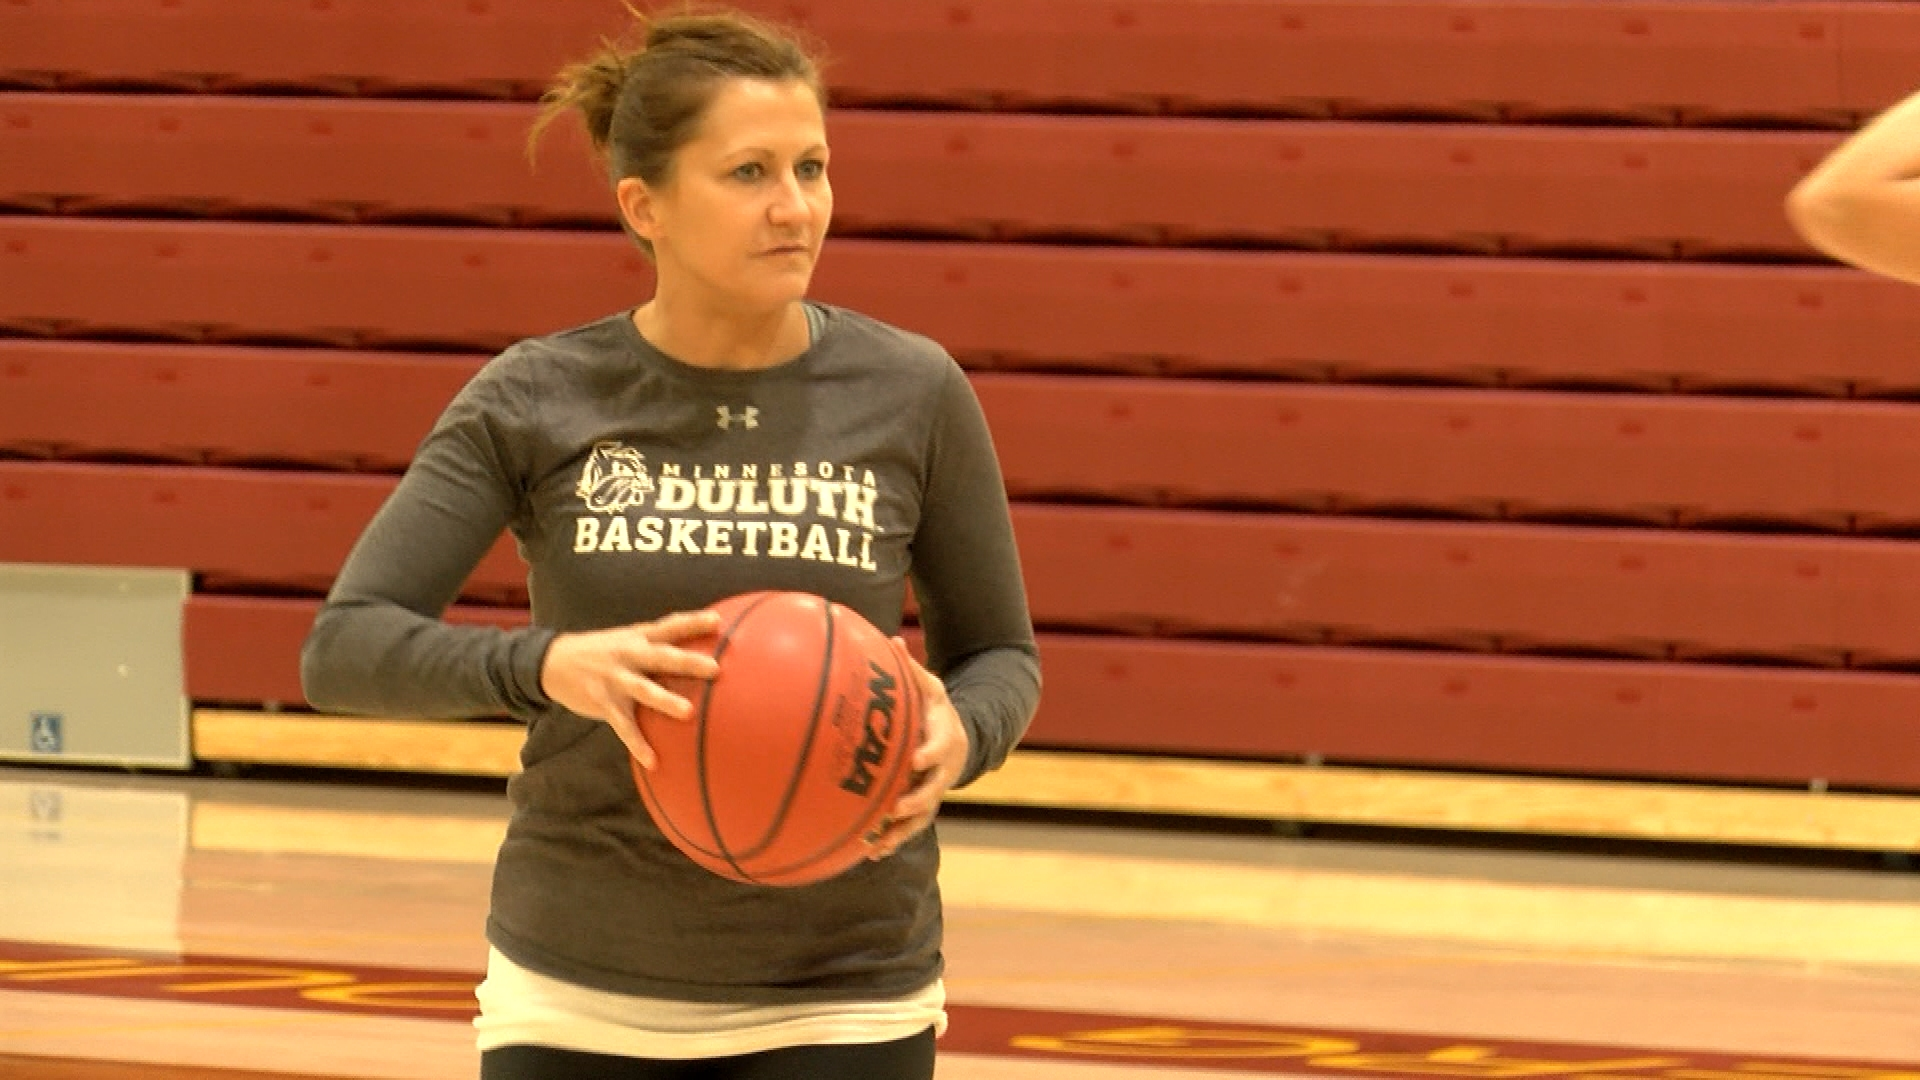 UMD women's basketball opens practice with team chemistry in mind